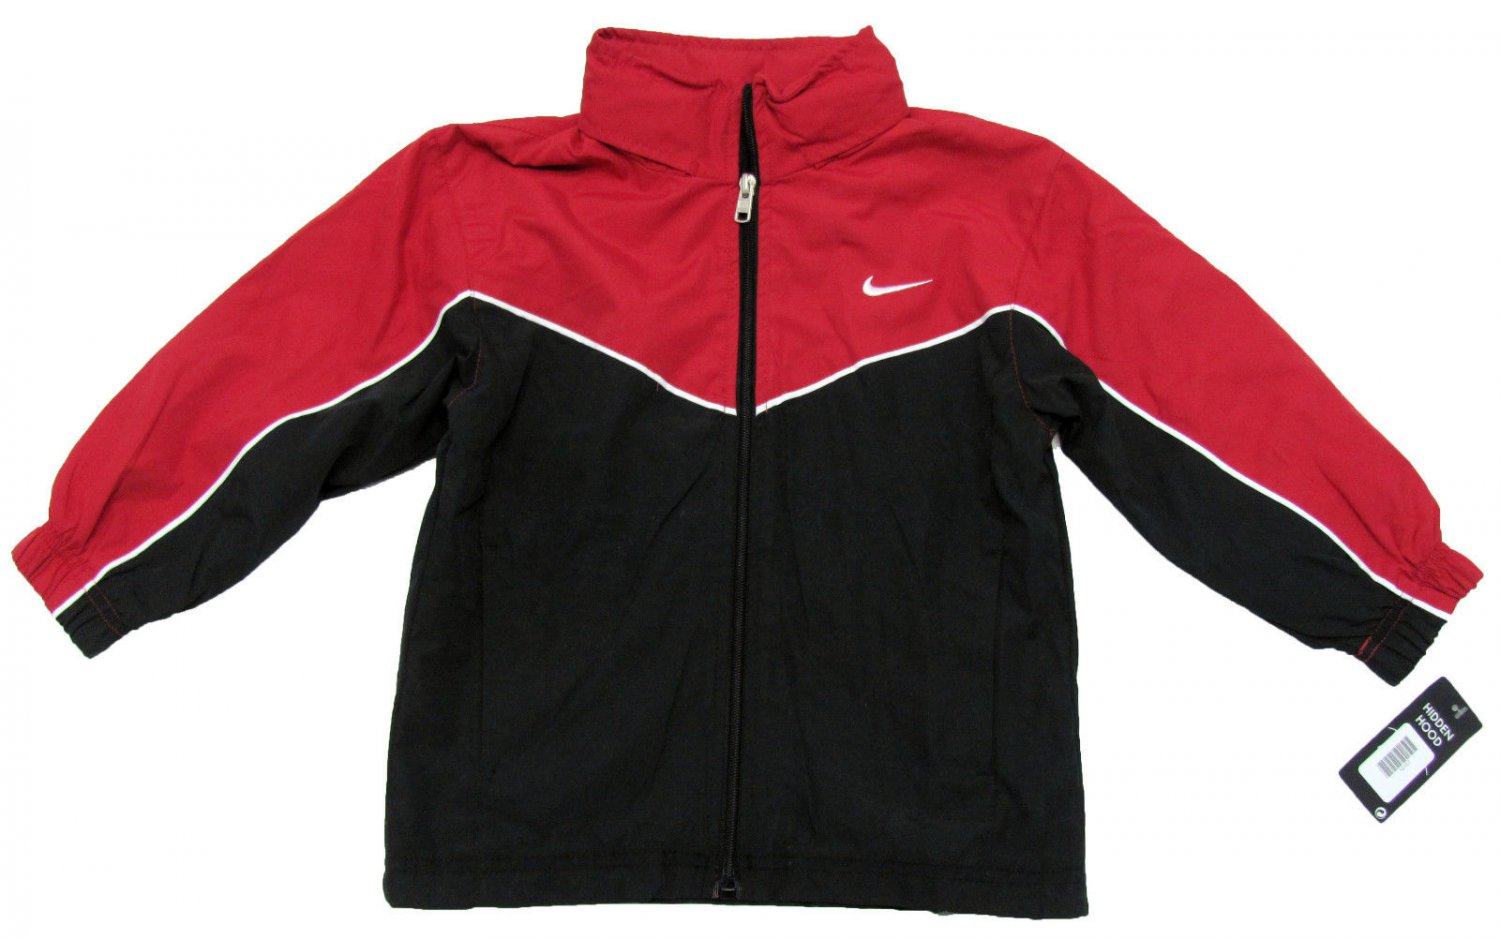 e3a36910d20a Nike Boys Size 4 Red and Black Windbreaker Jacket with Hidden Hood New